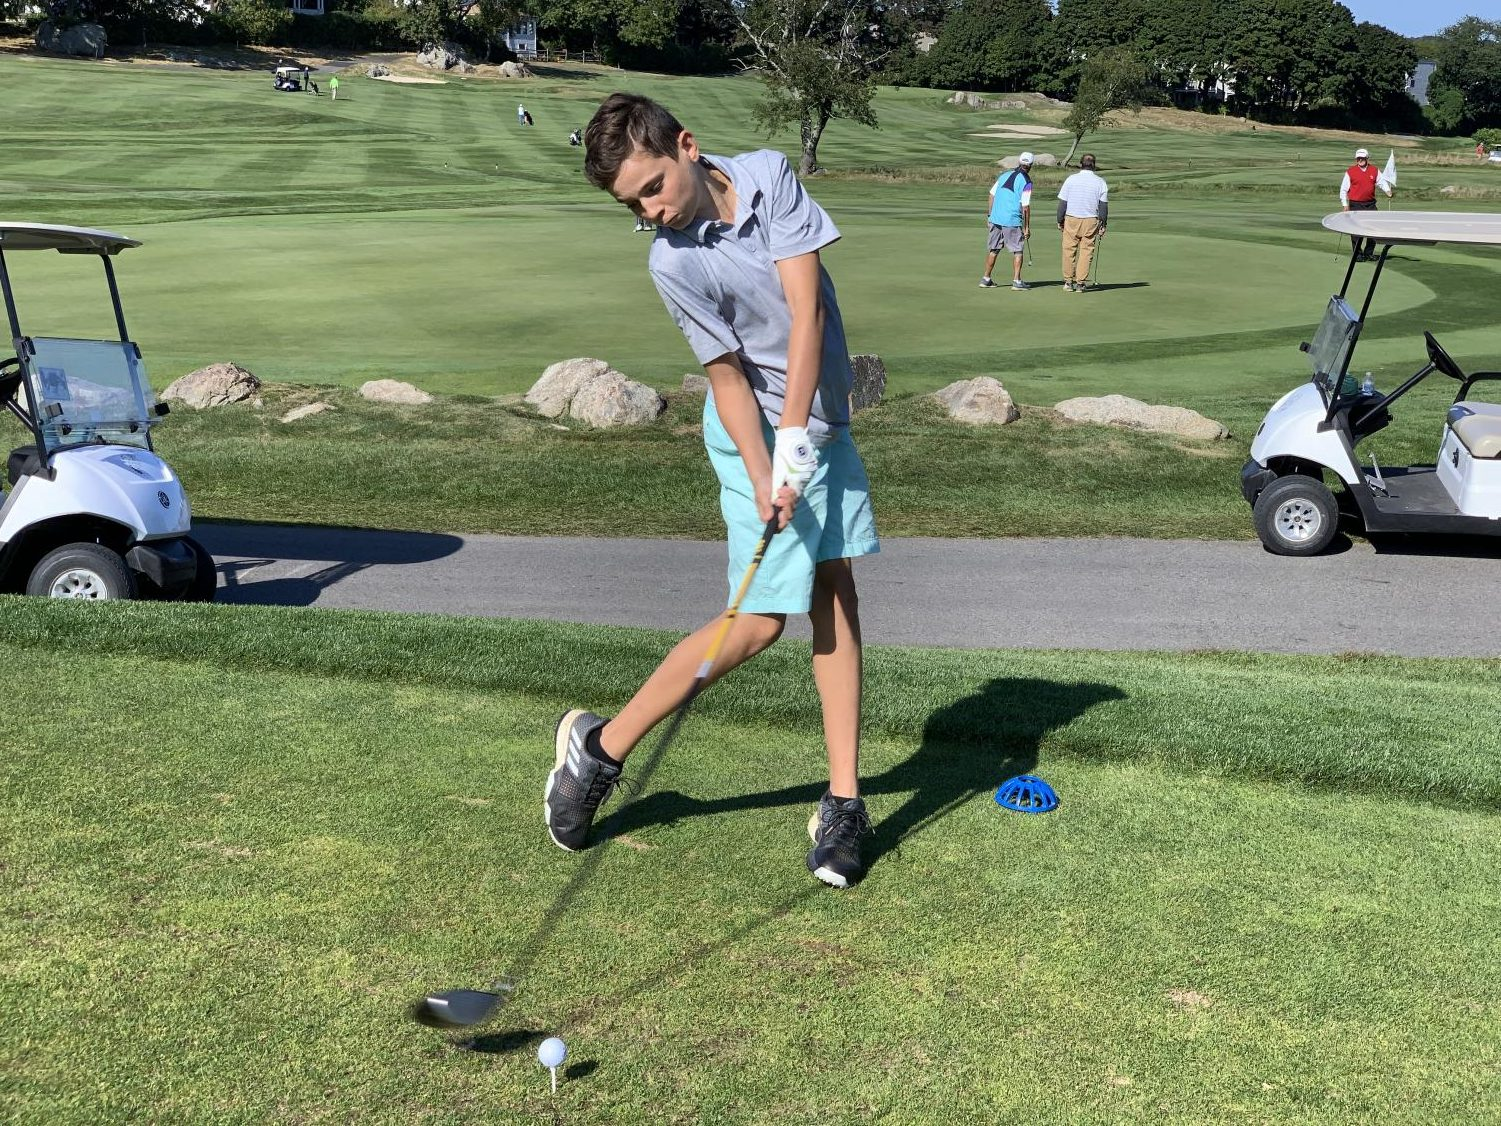 Freshman Michael Calamo drives the ball on the first hole at Bass Rocks Golf Club